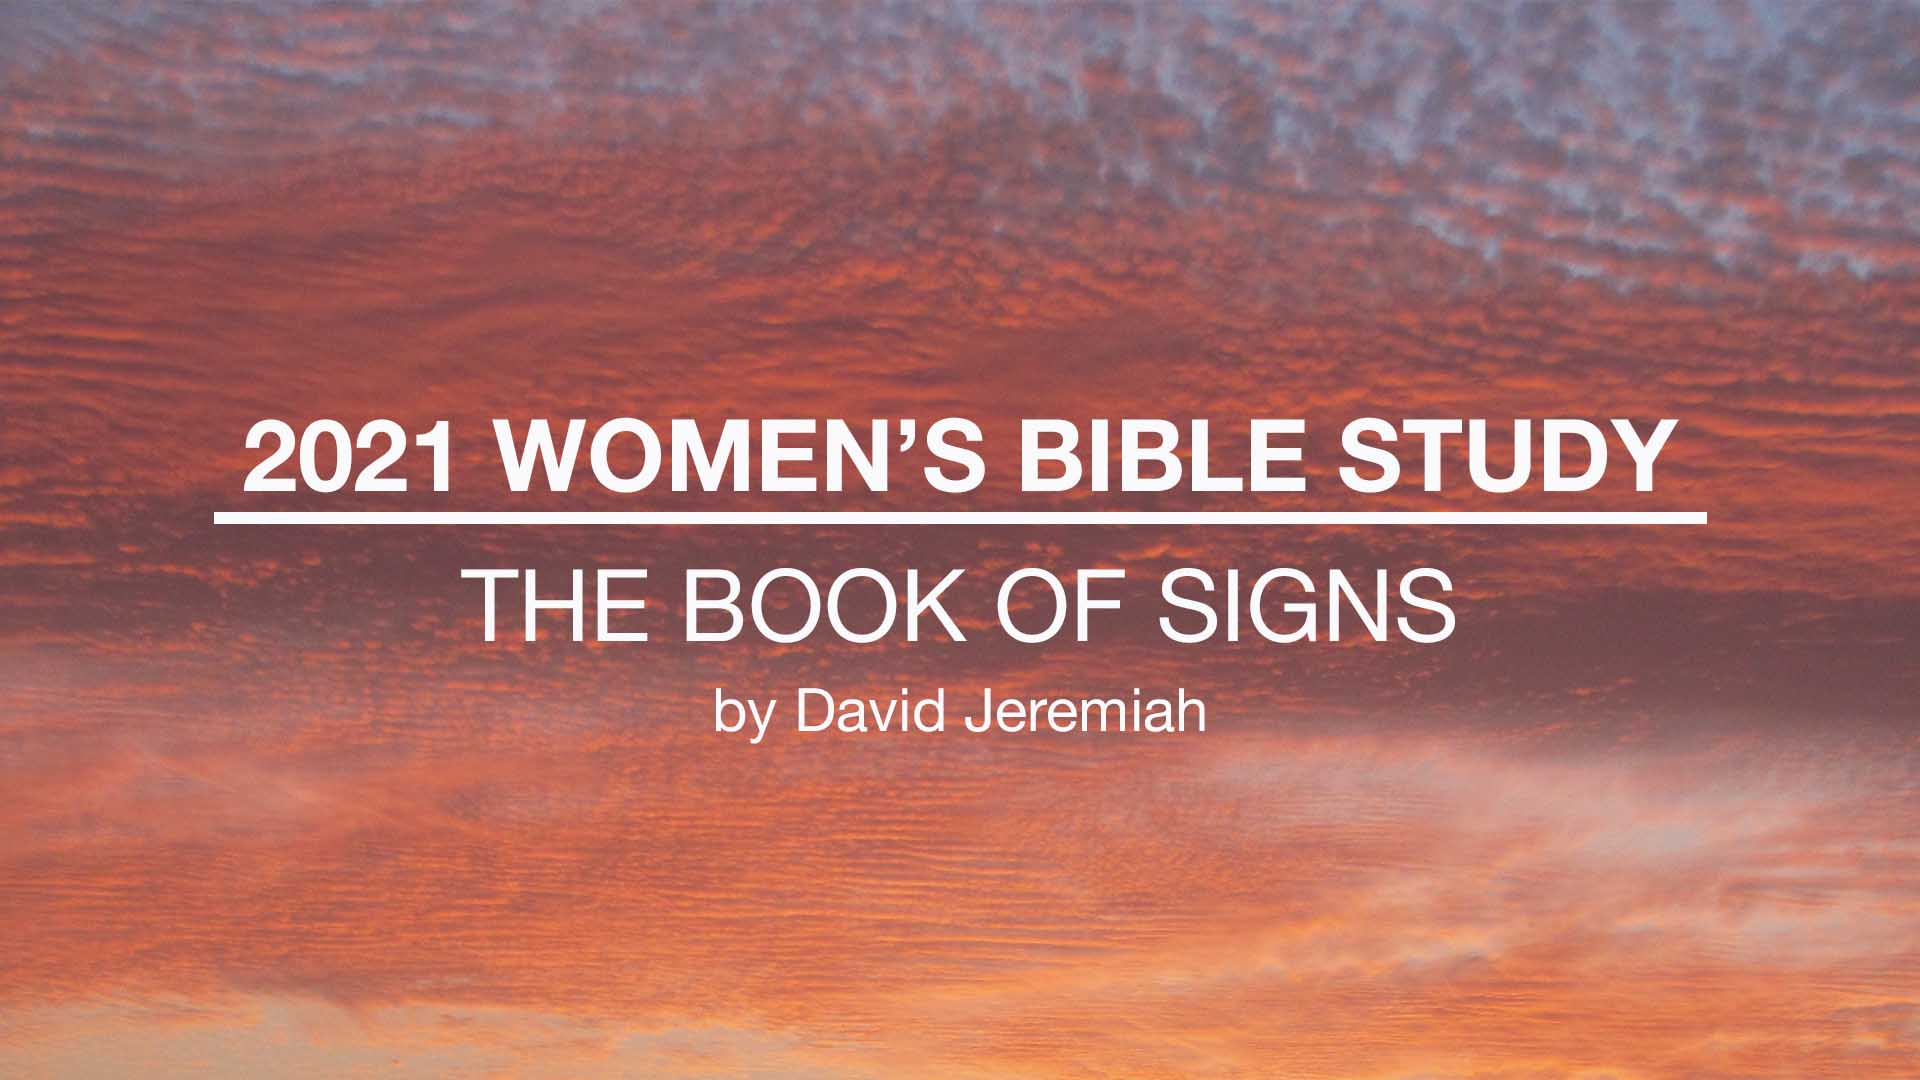 Women's Bible Study: The Book of Signs